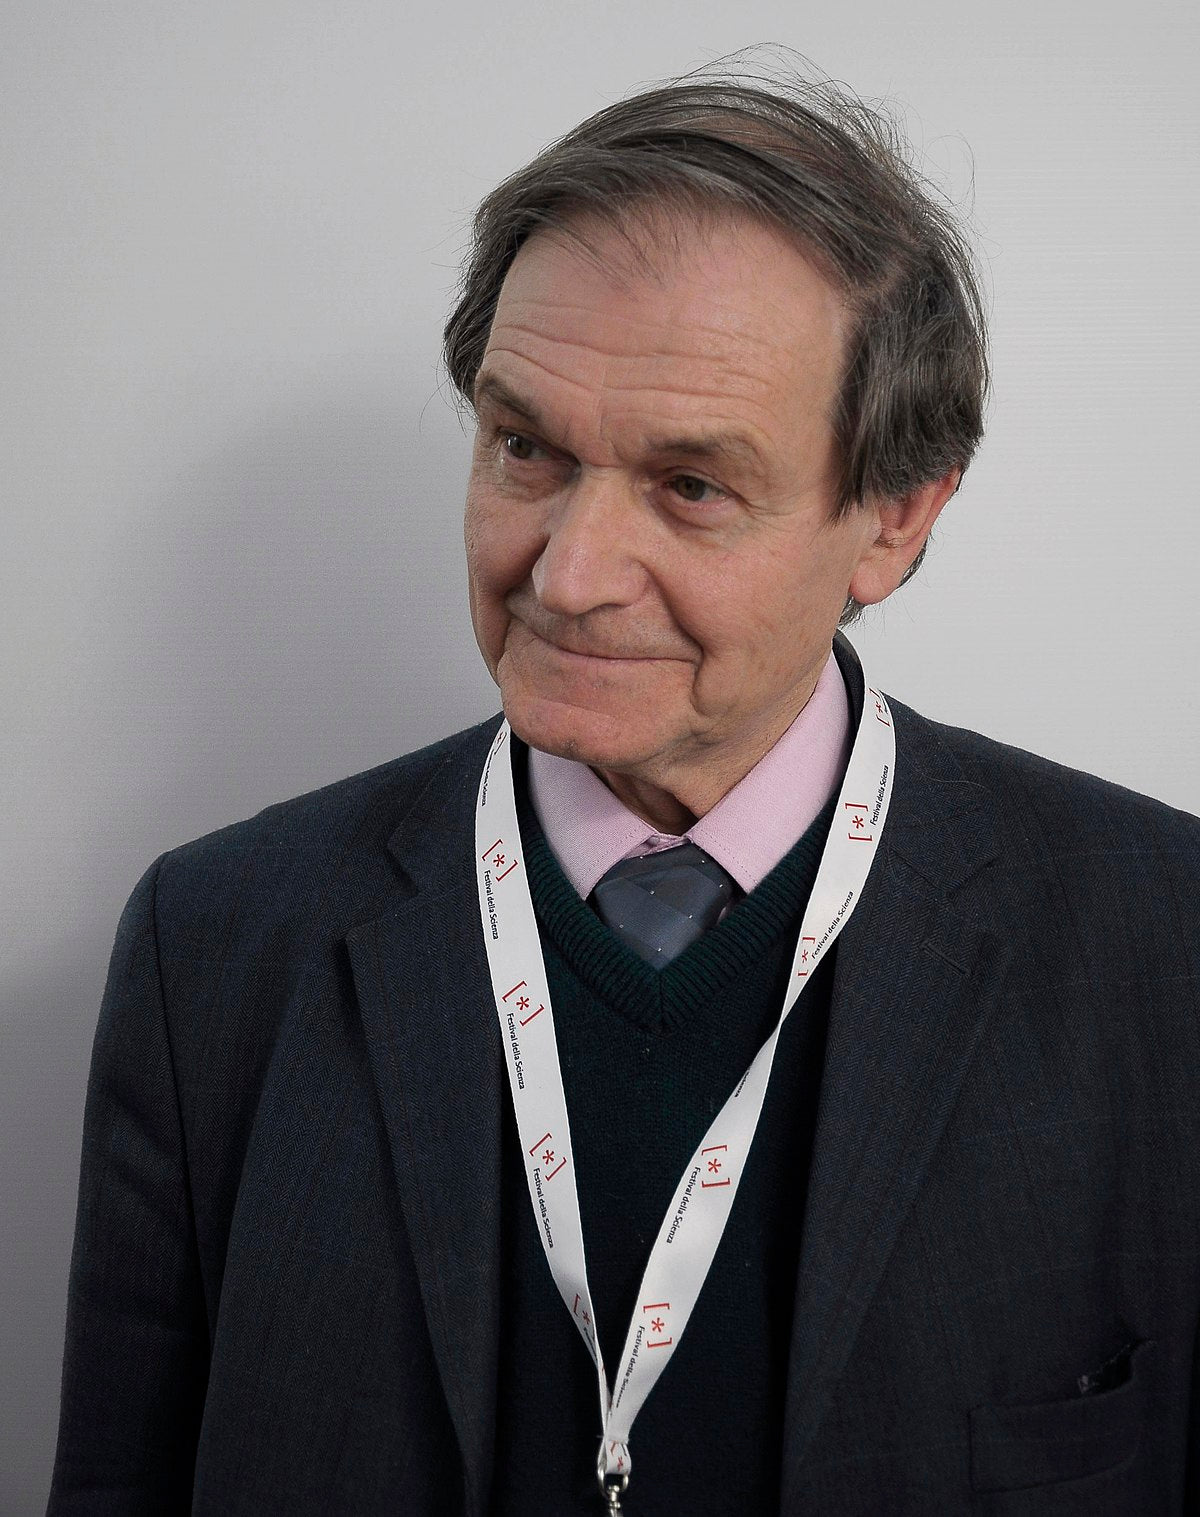 Roger Penrose Awarded 2020 Nobel Prize in Physics